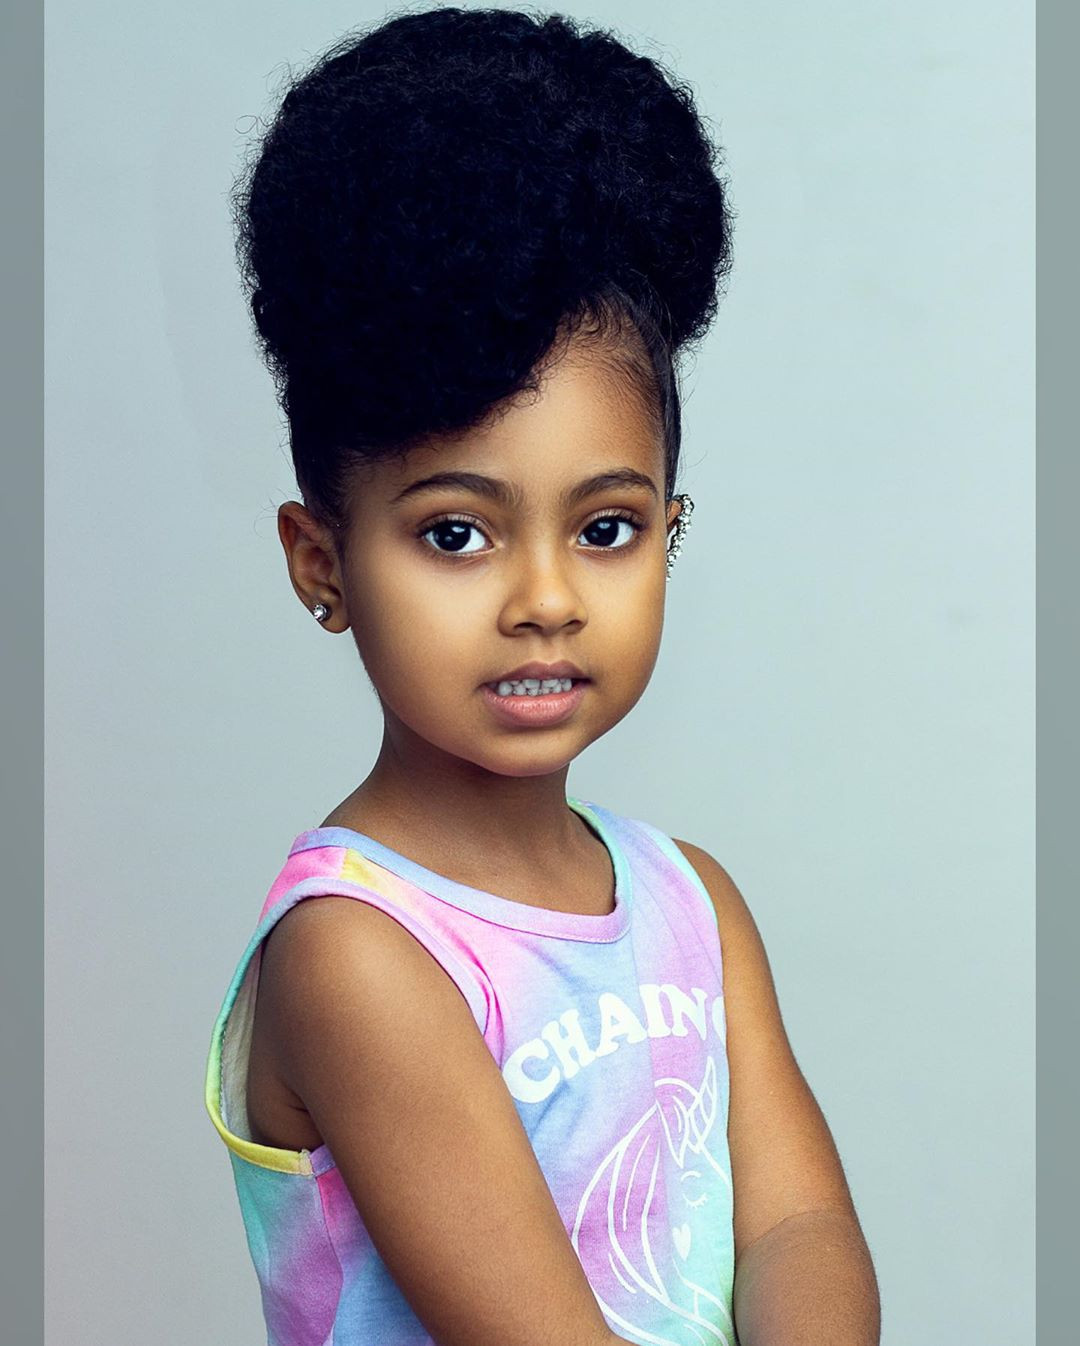 Ufuoma McDermott's daughter